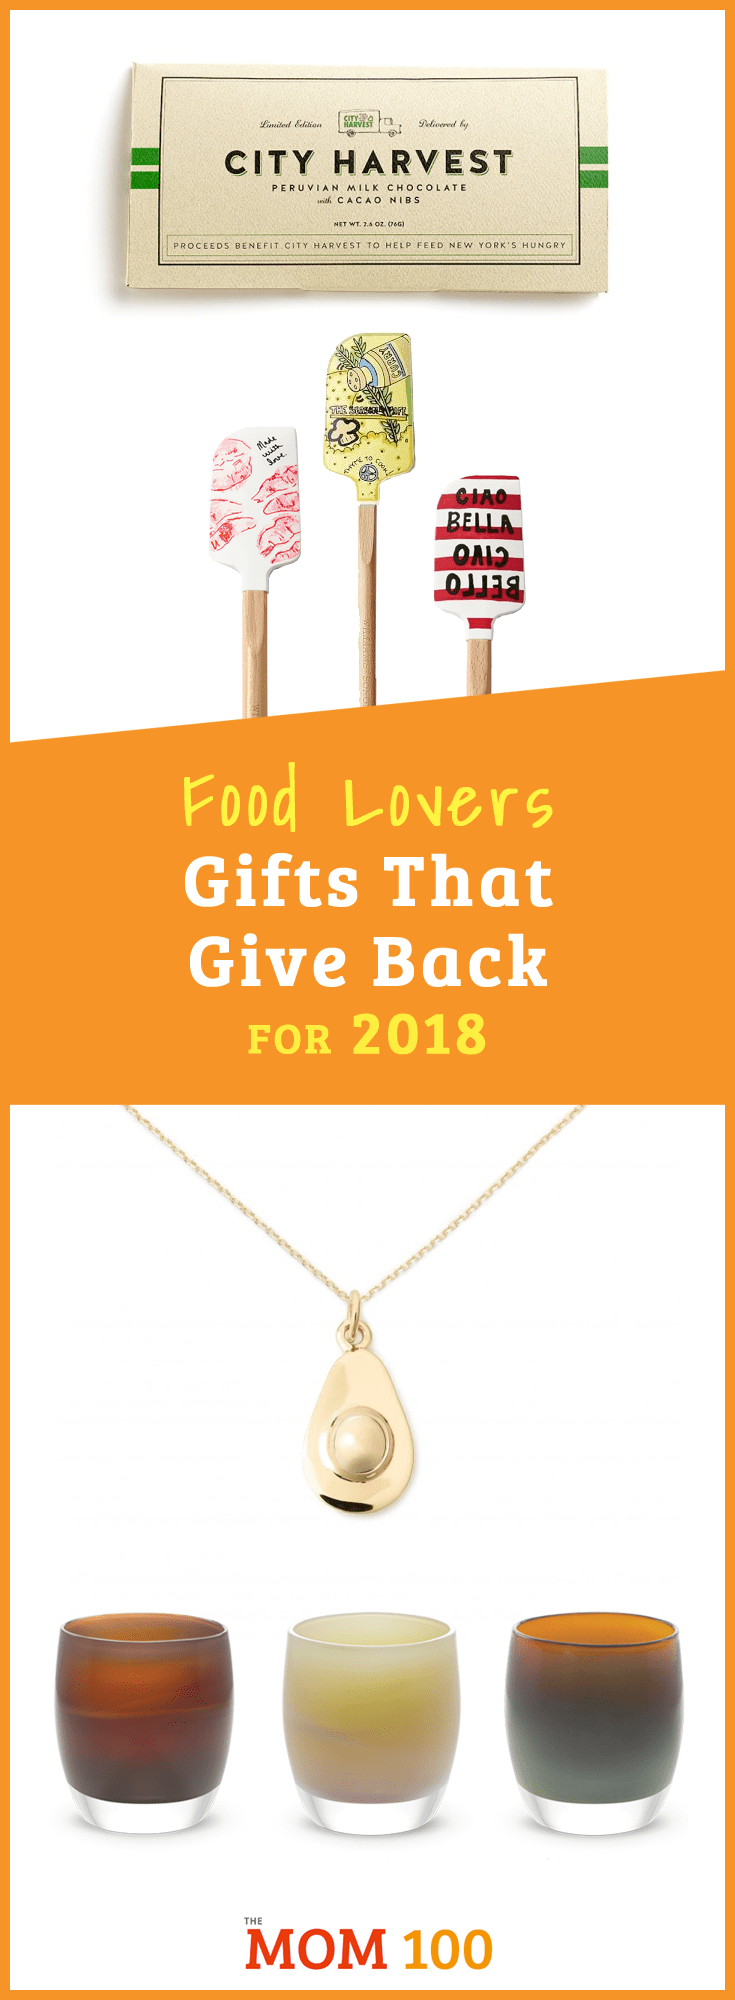 The following food-related gifts are not only sure to make the beneficiaries happy, but also benefit some very worthy charities.  Stock up for the holidays!